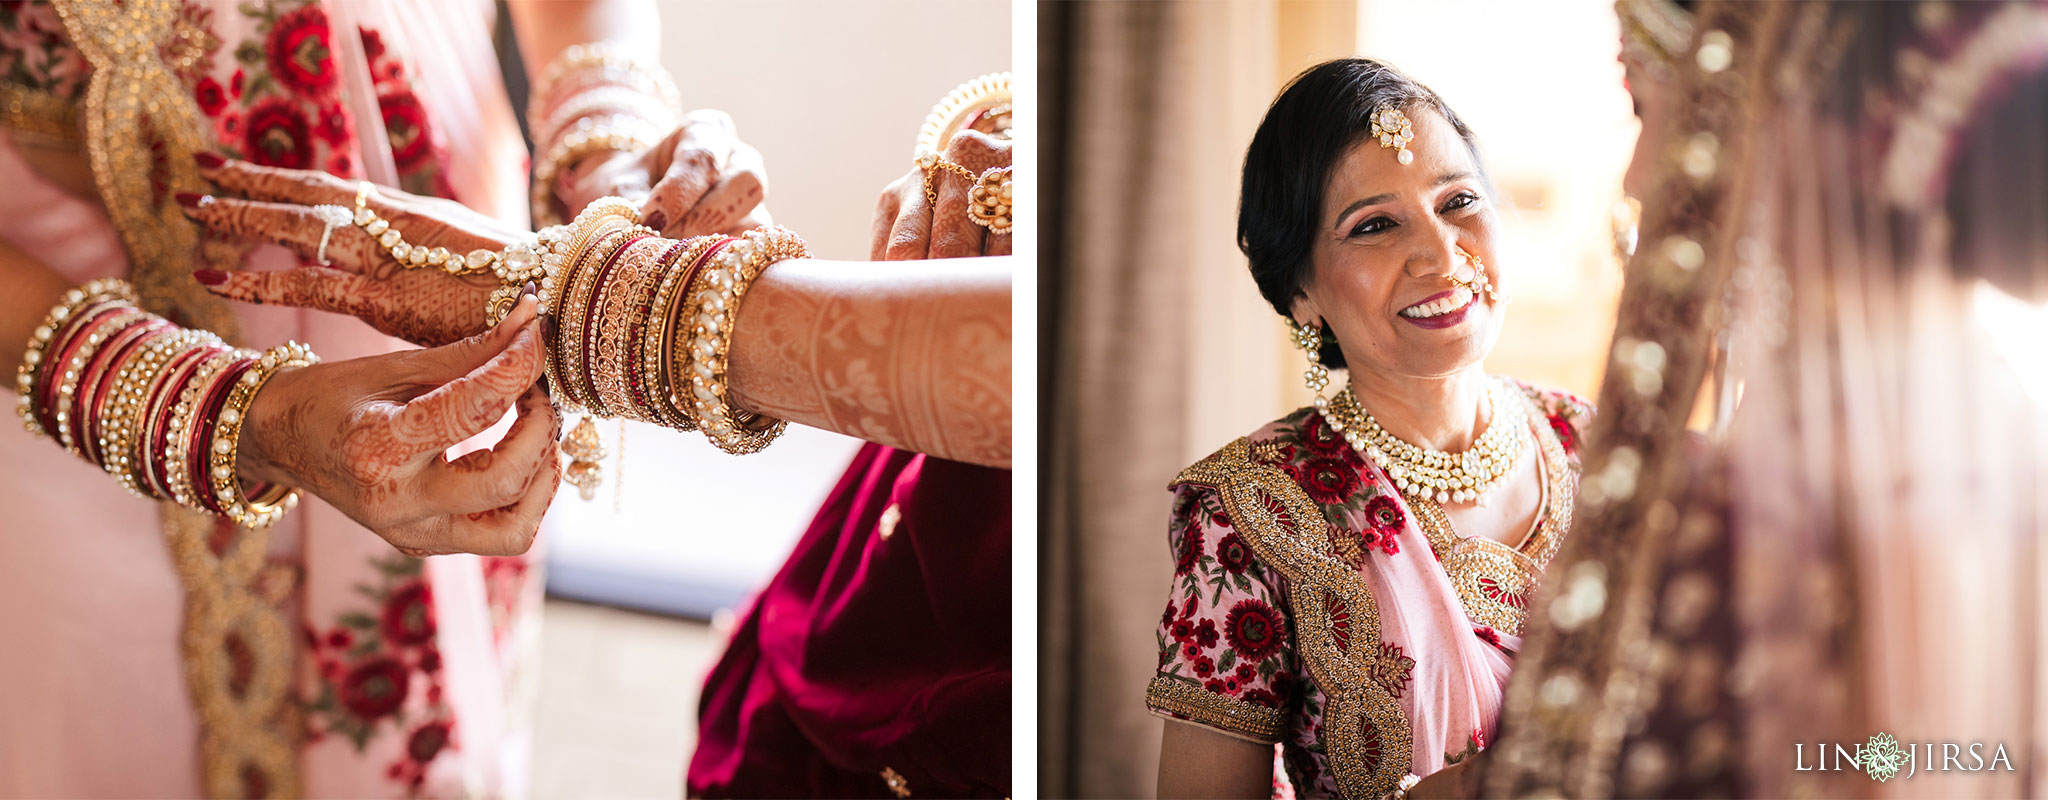 03 hotel irvine orange county indian wedding photograpy